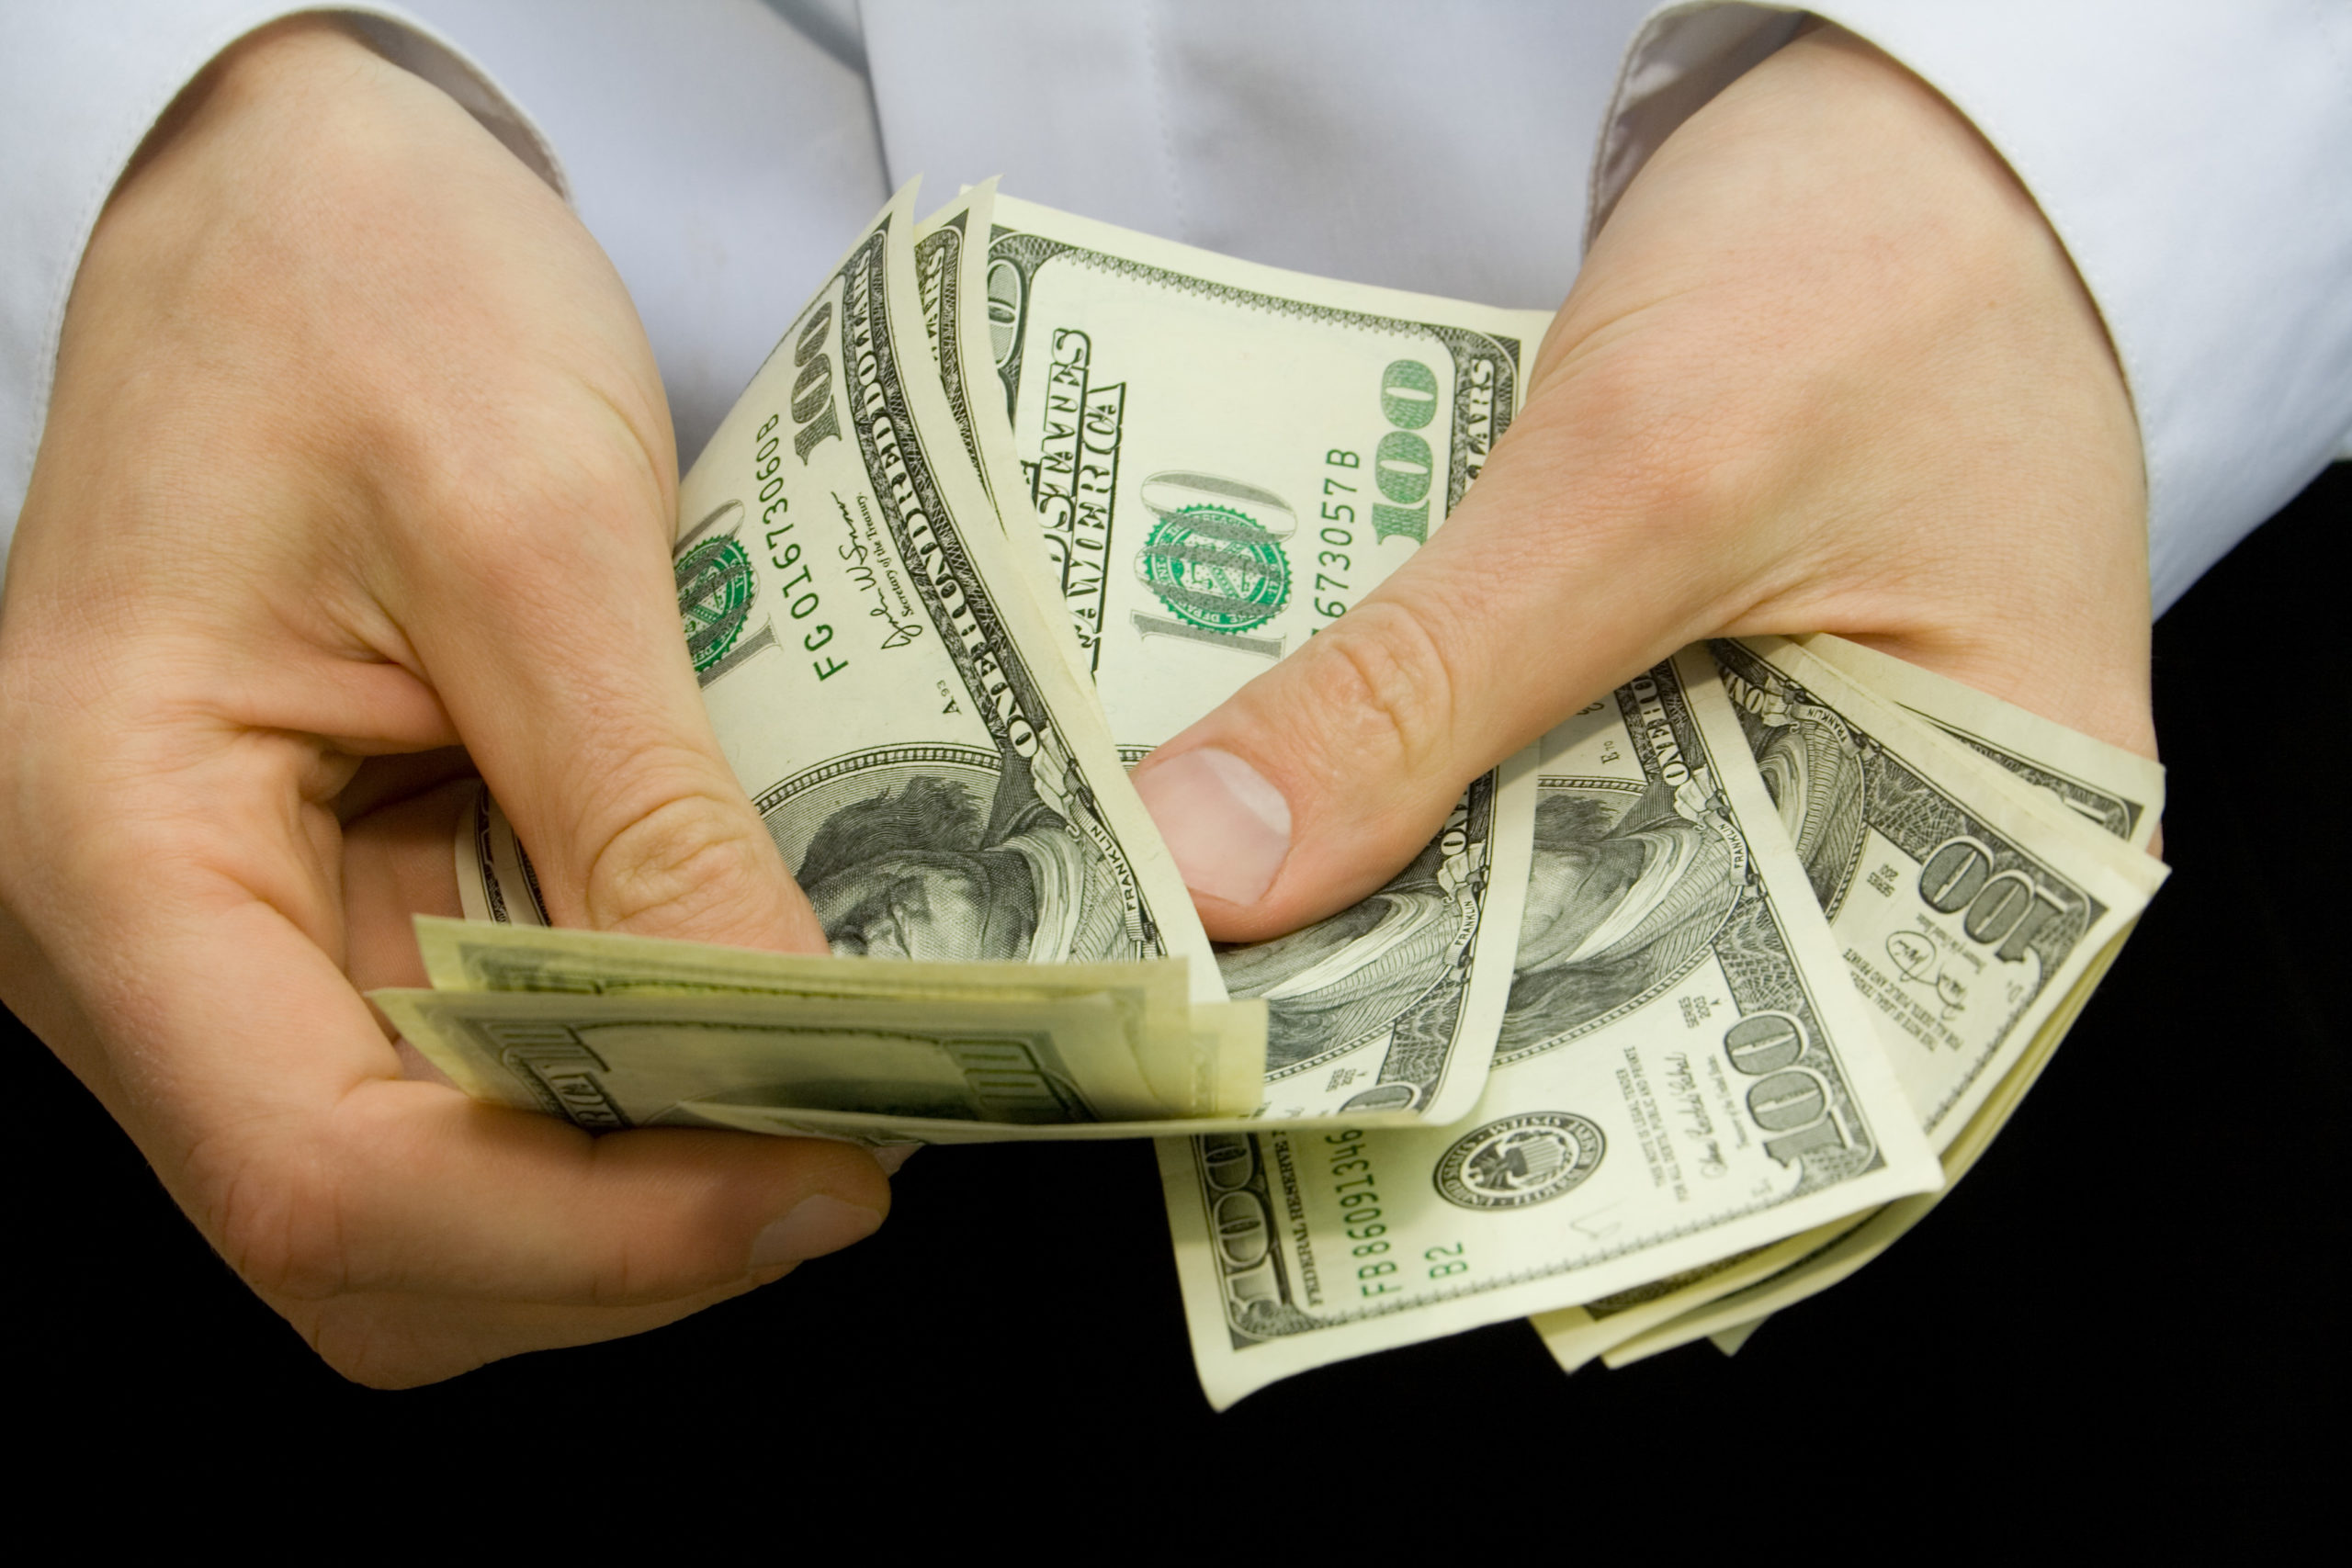 how much does it cost to hire a ghostwriter for a book, erick mertz, portland oregon